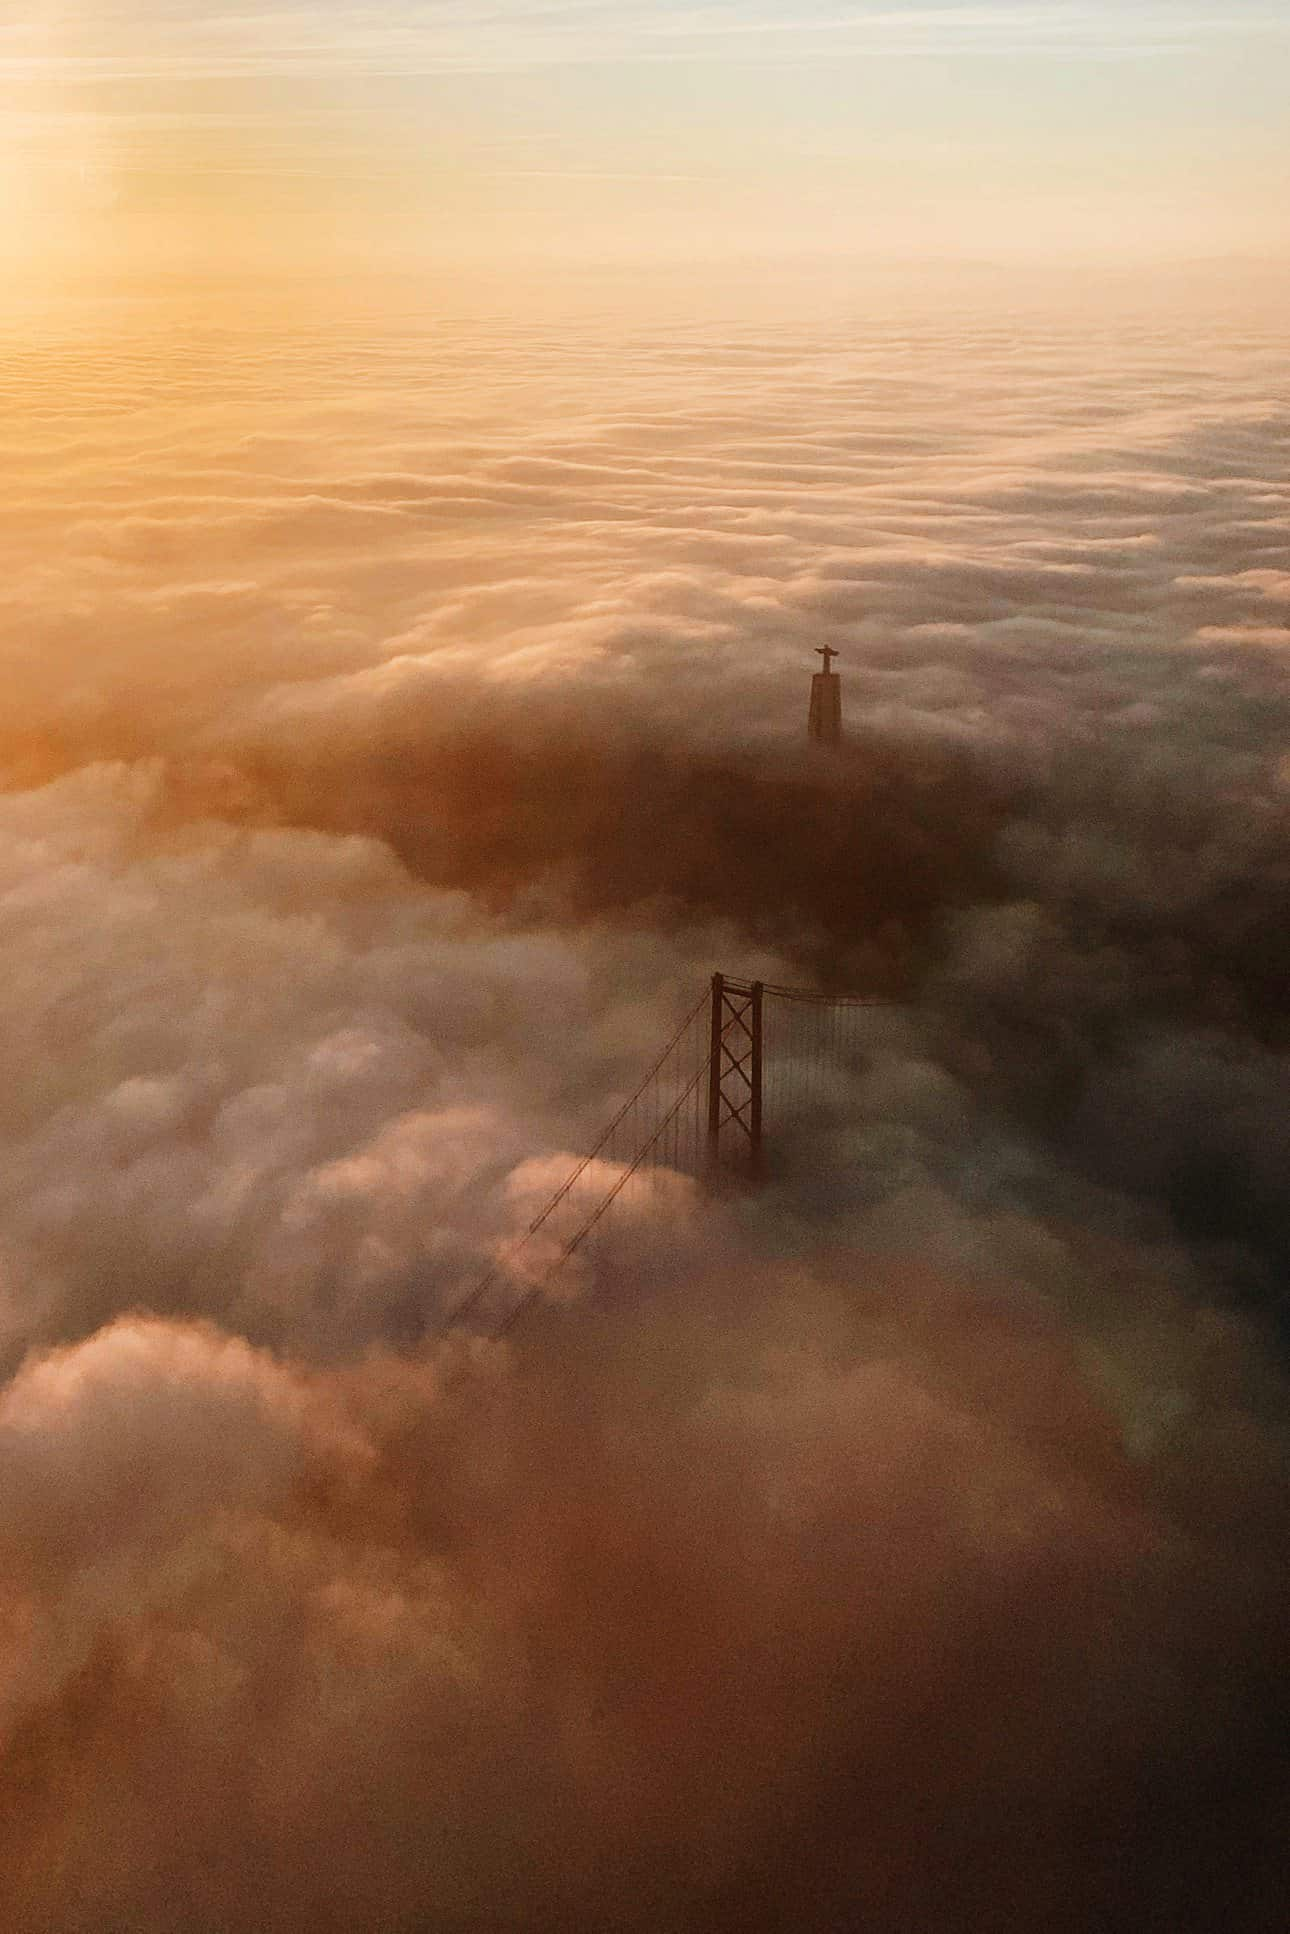 Looking on top of a bridge which is surrounded by clouds